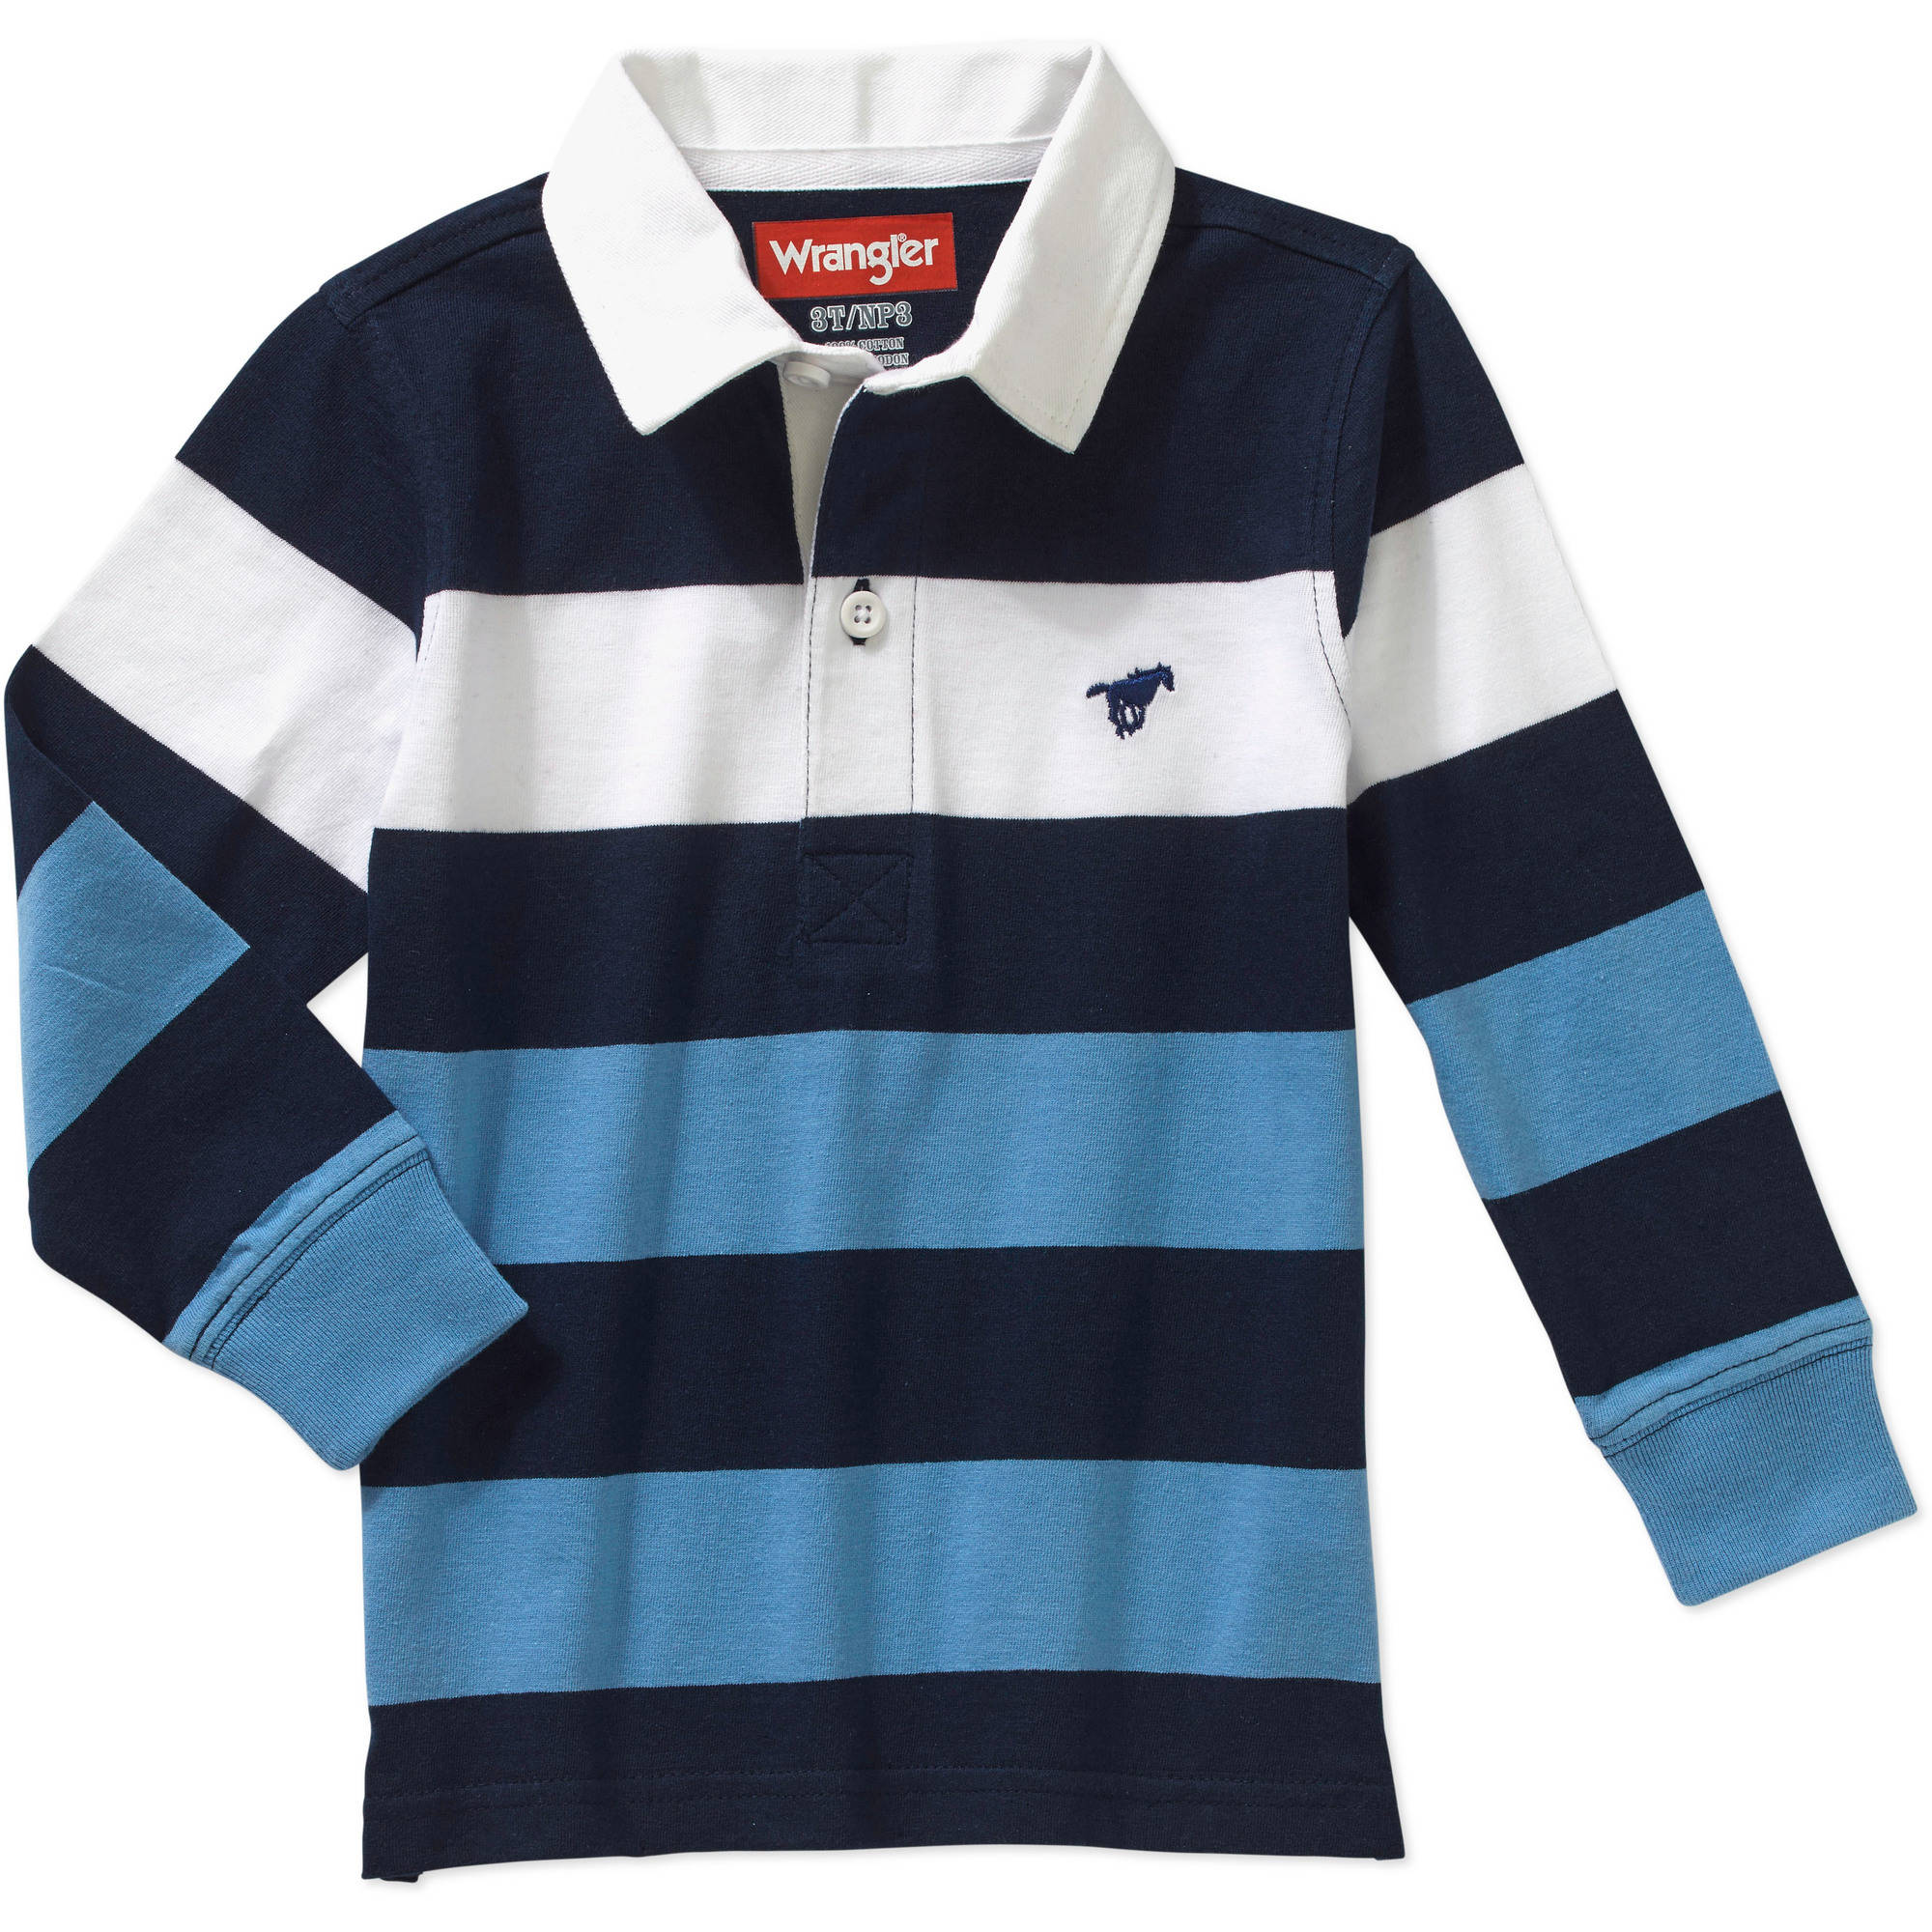 Wrangler Toddler Boys' Hangdown Rugby Polo Shirt